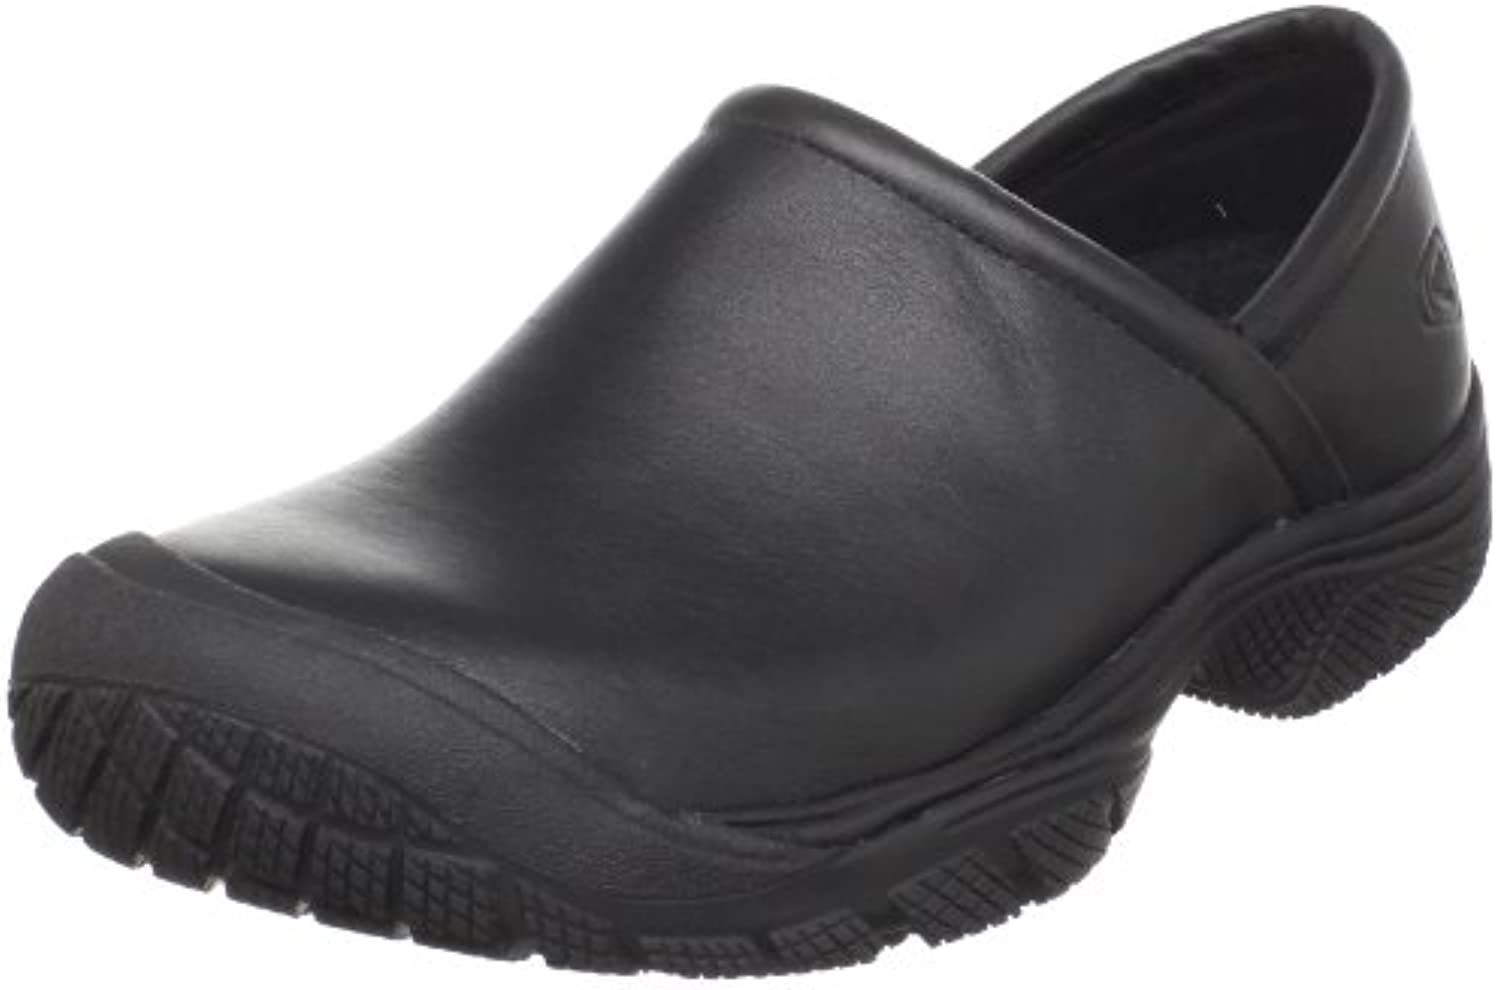 Keen Utility Men's PTC Slip on Work Shoe Black 12 M US